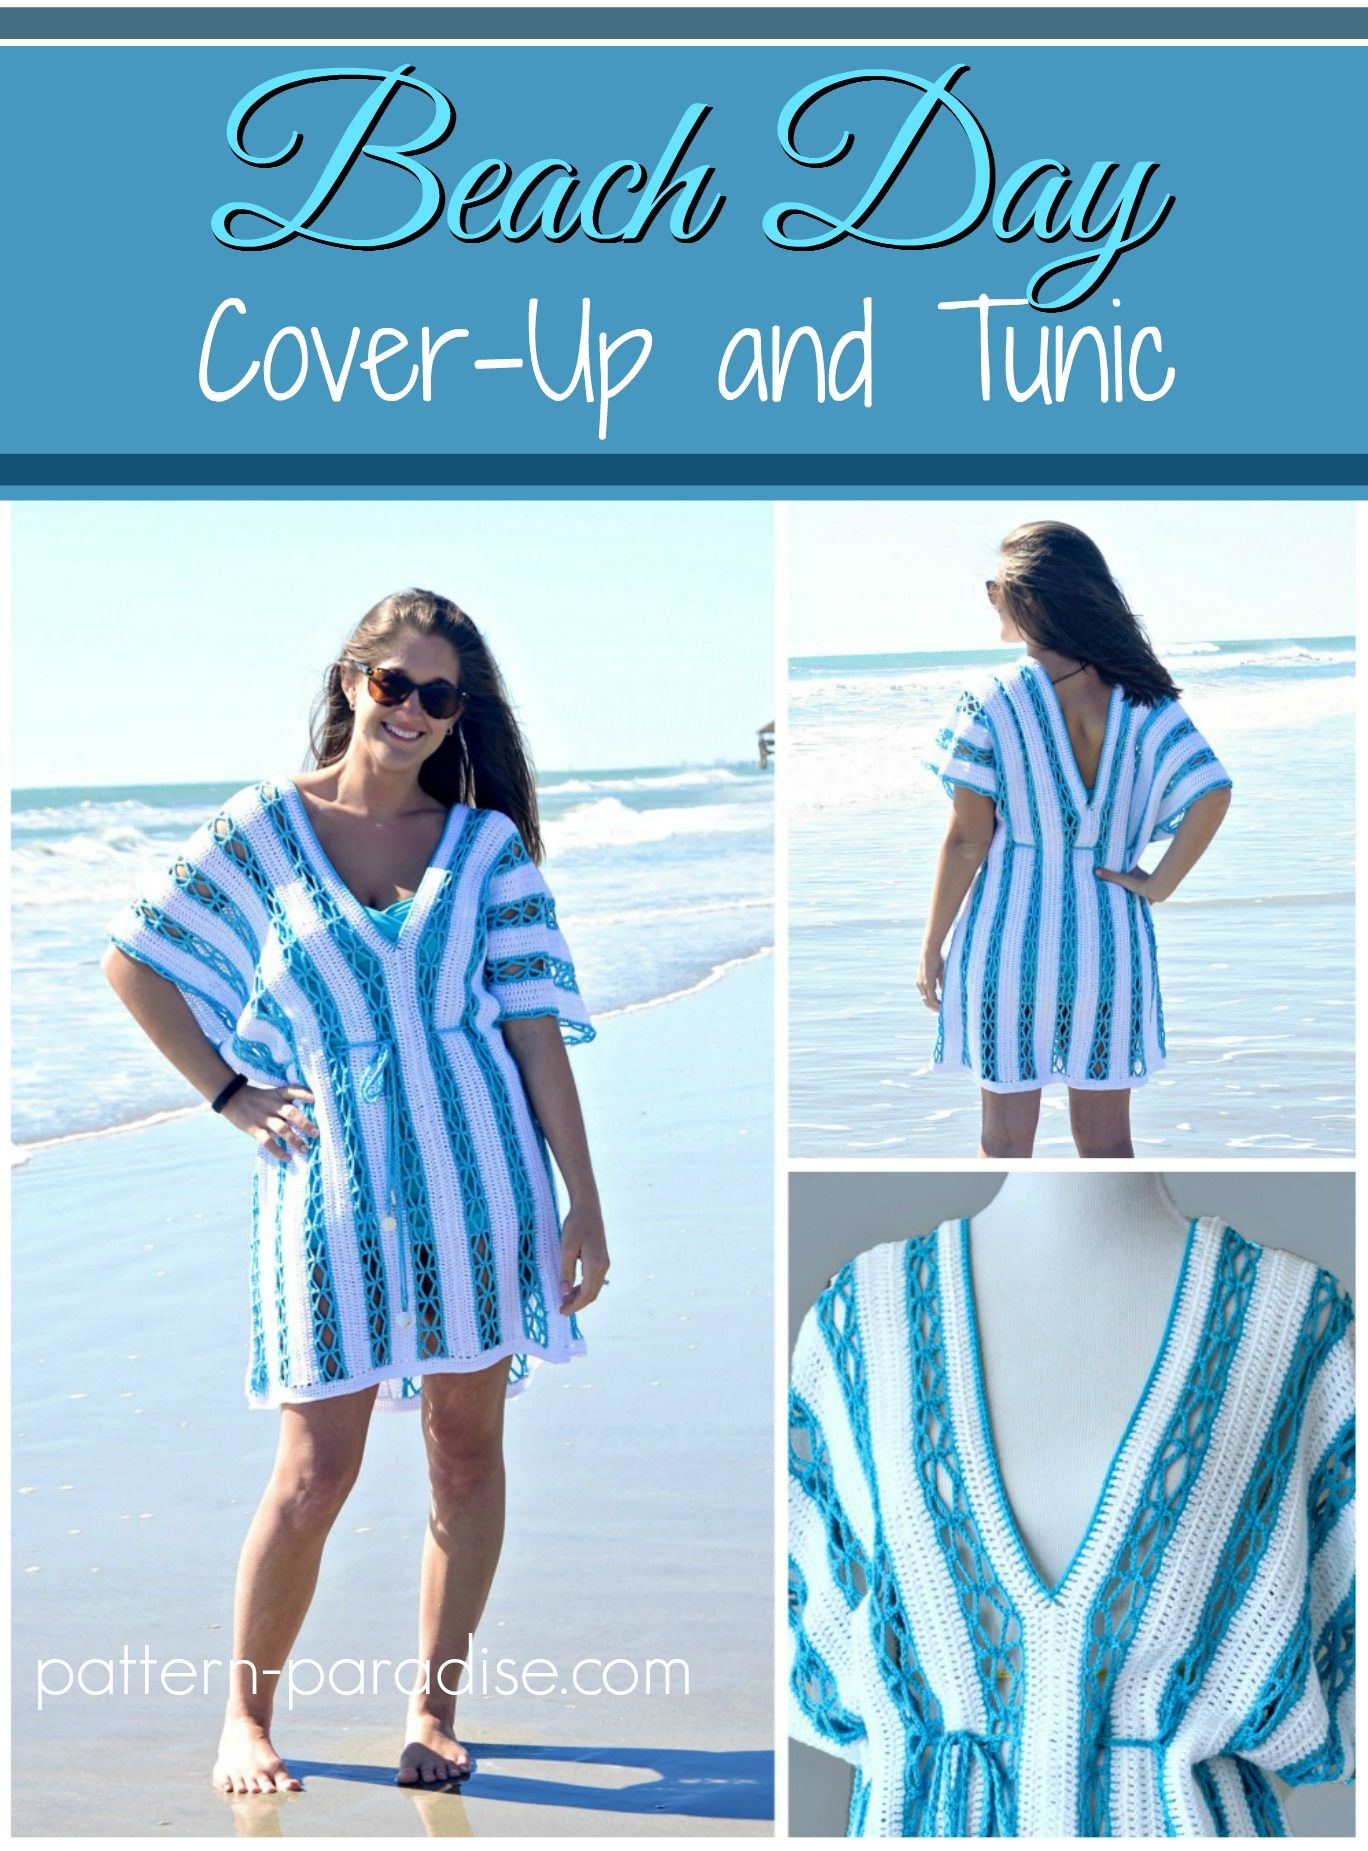 Celebratemomcal Beach Day Cover Up Tunic Pattern Paradise Crochet Bathing Suit Cover Crochet Clothes Patterns Crochet Top Pattern